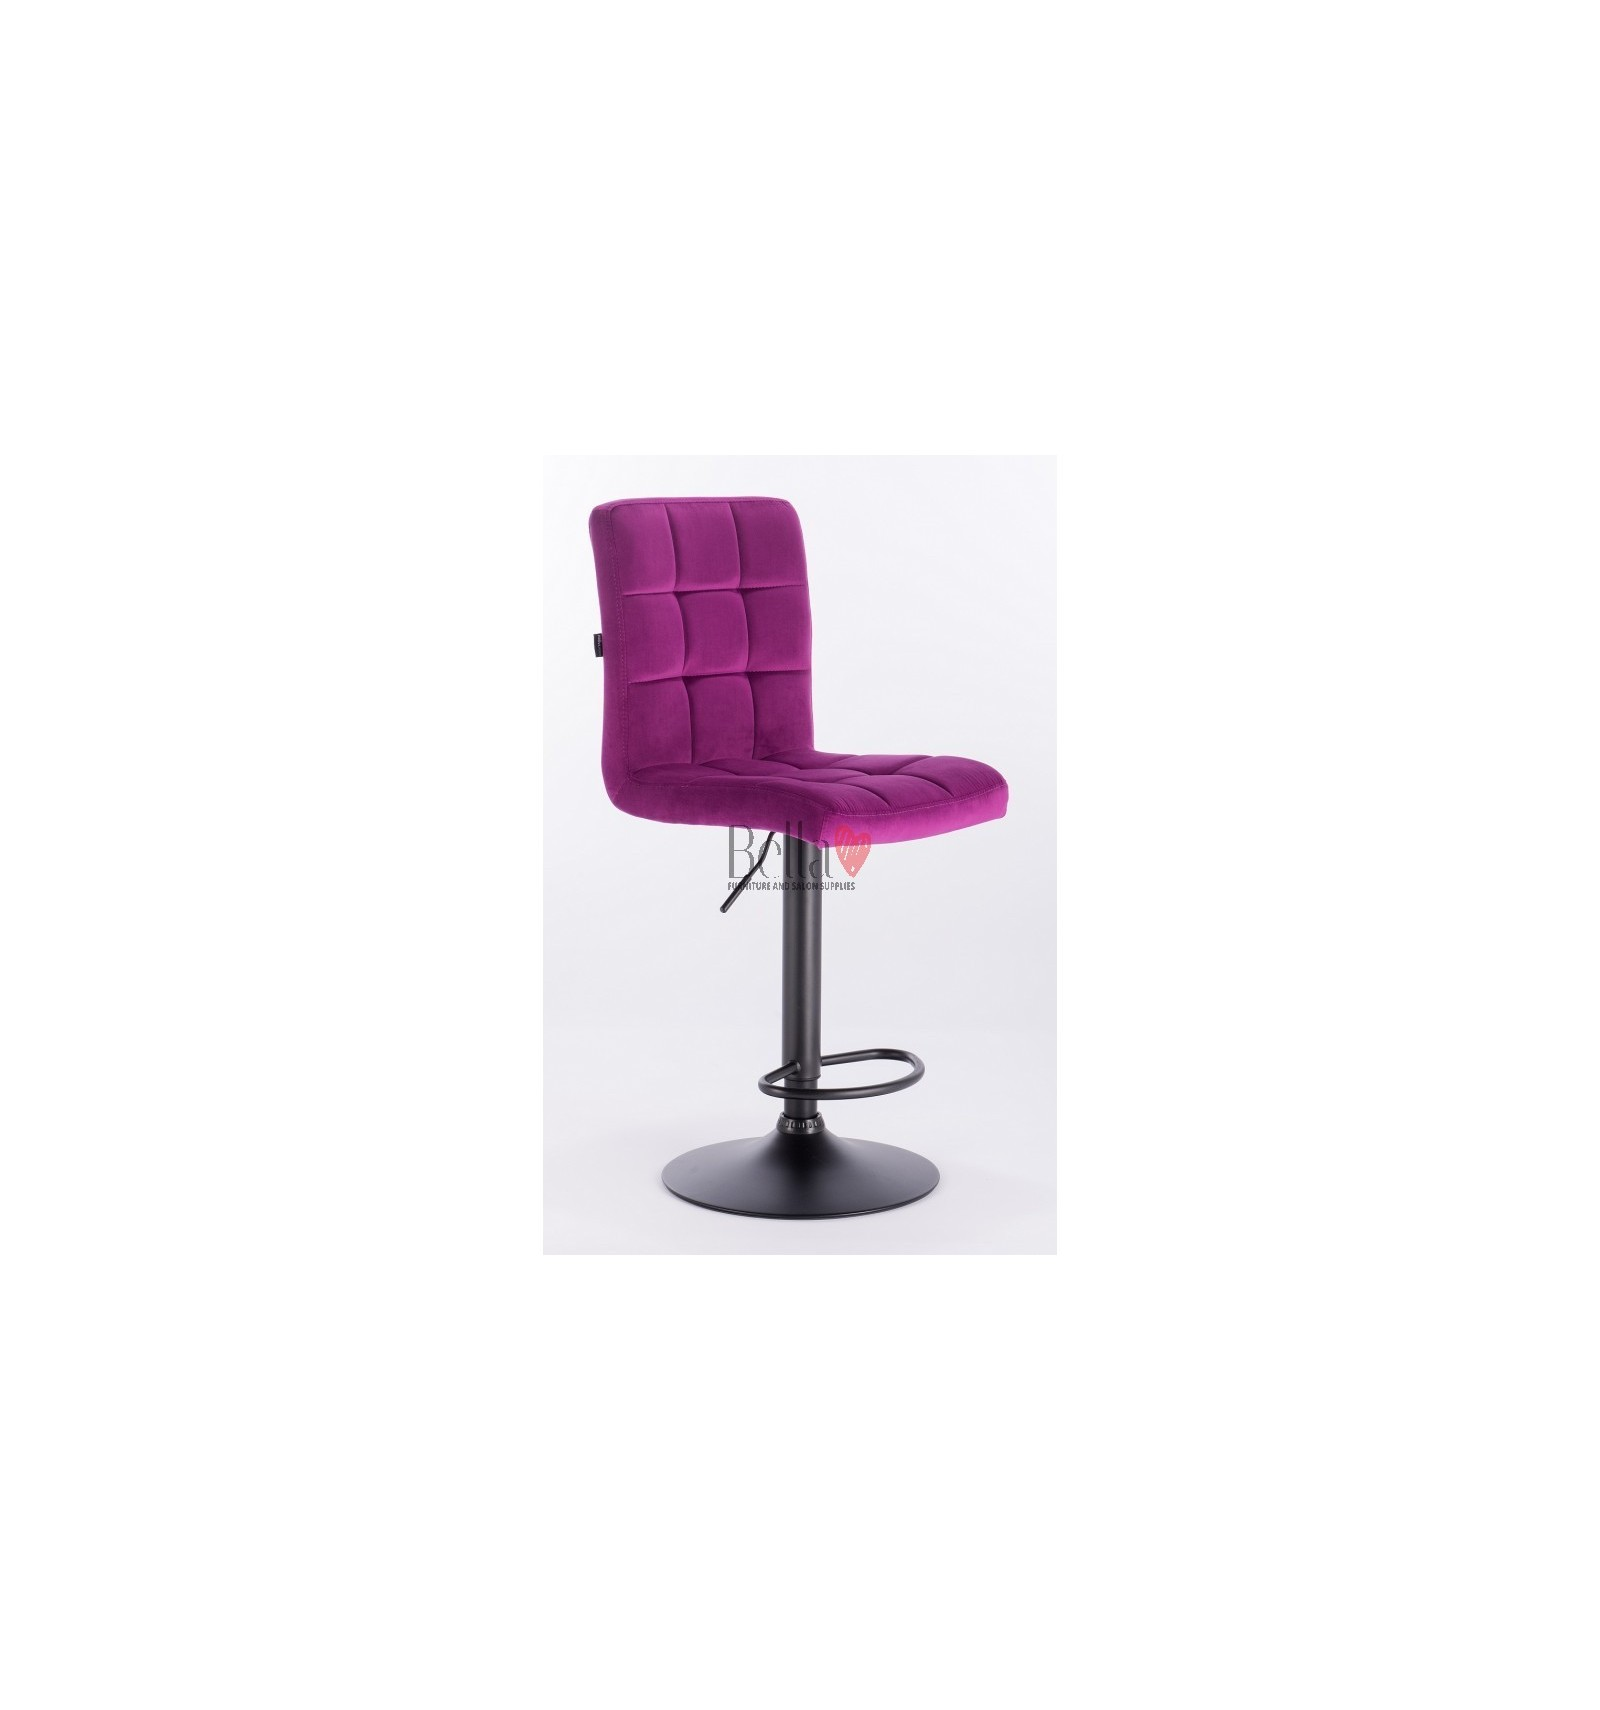 purple high chair desk egypt elegant chairs perfect for beauty salon and makeup salons